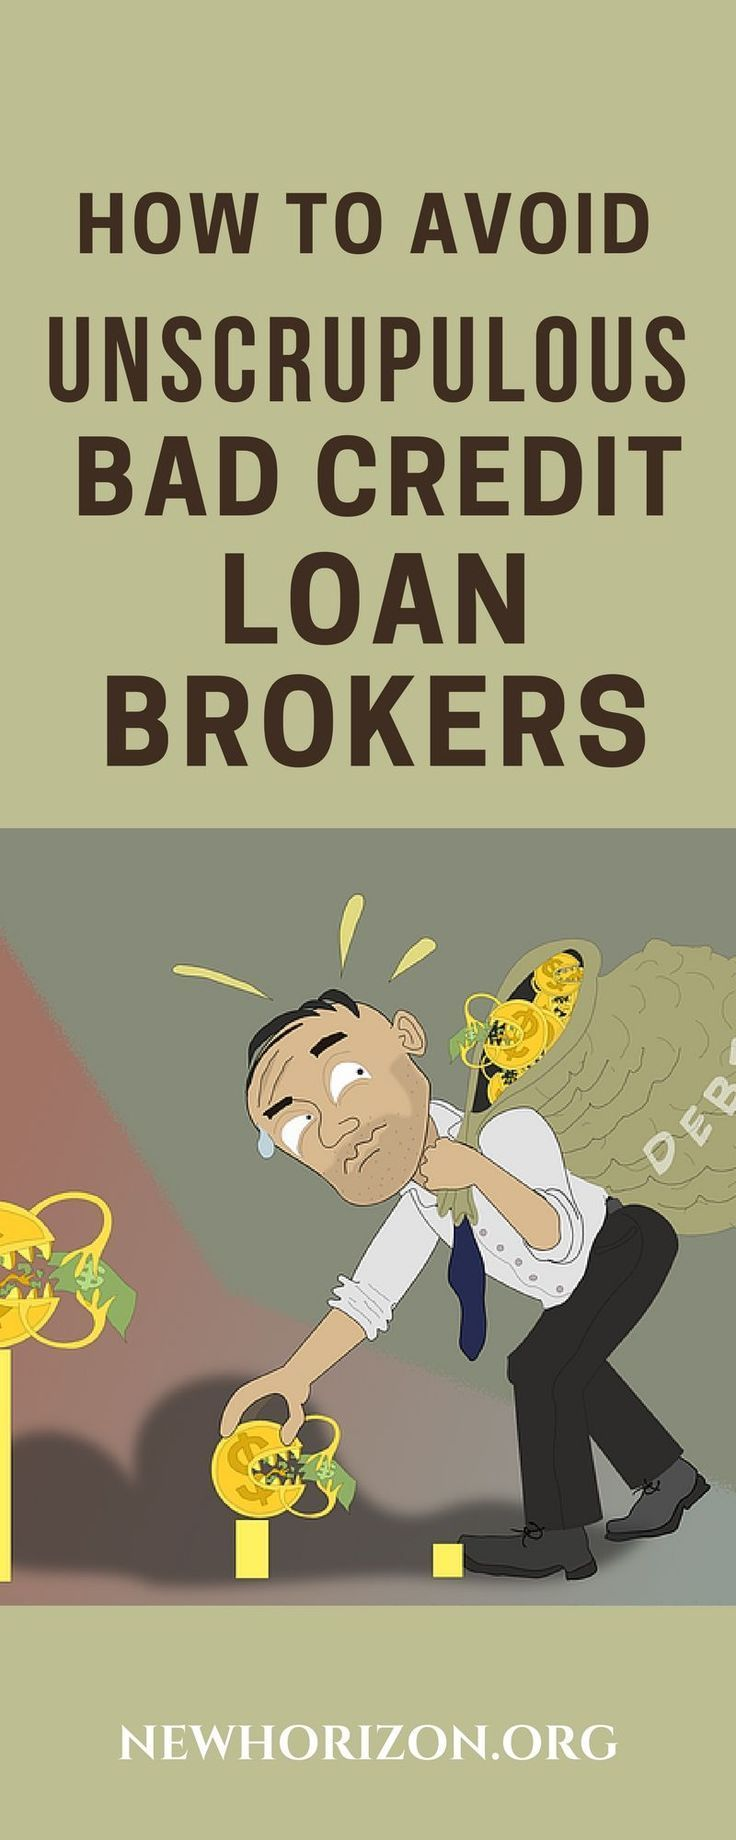 Seeking Approval For A Bad Credit Loan Particularly A Home Loan Can Be Very Dif Loans For Bad Credit No Credit Loans Bad Credit